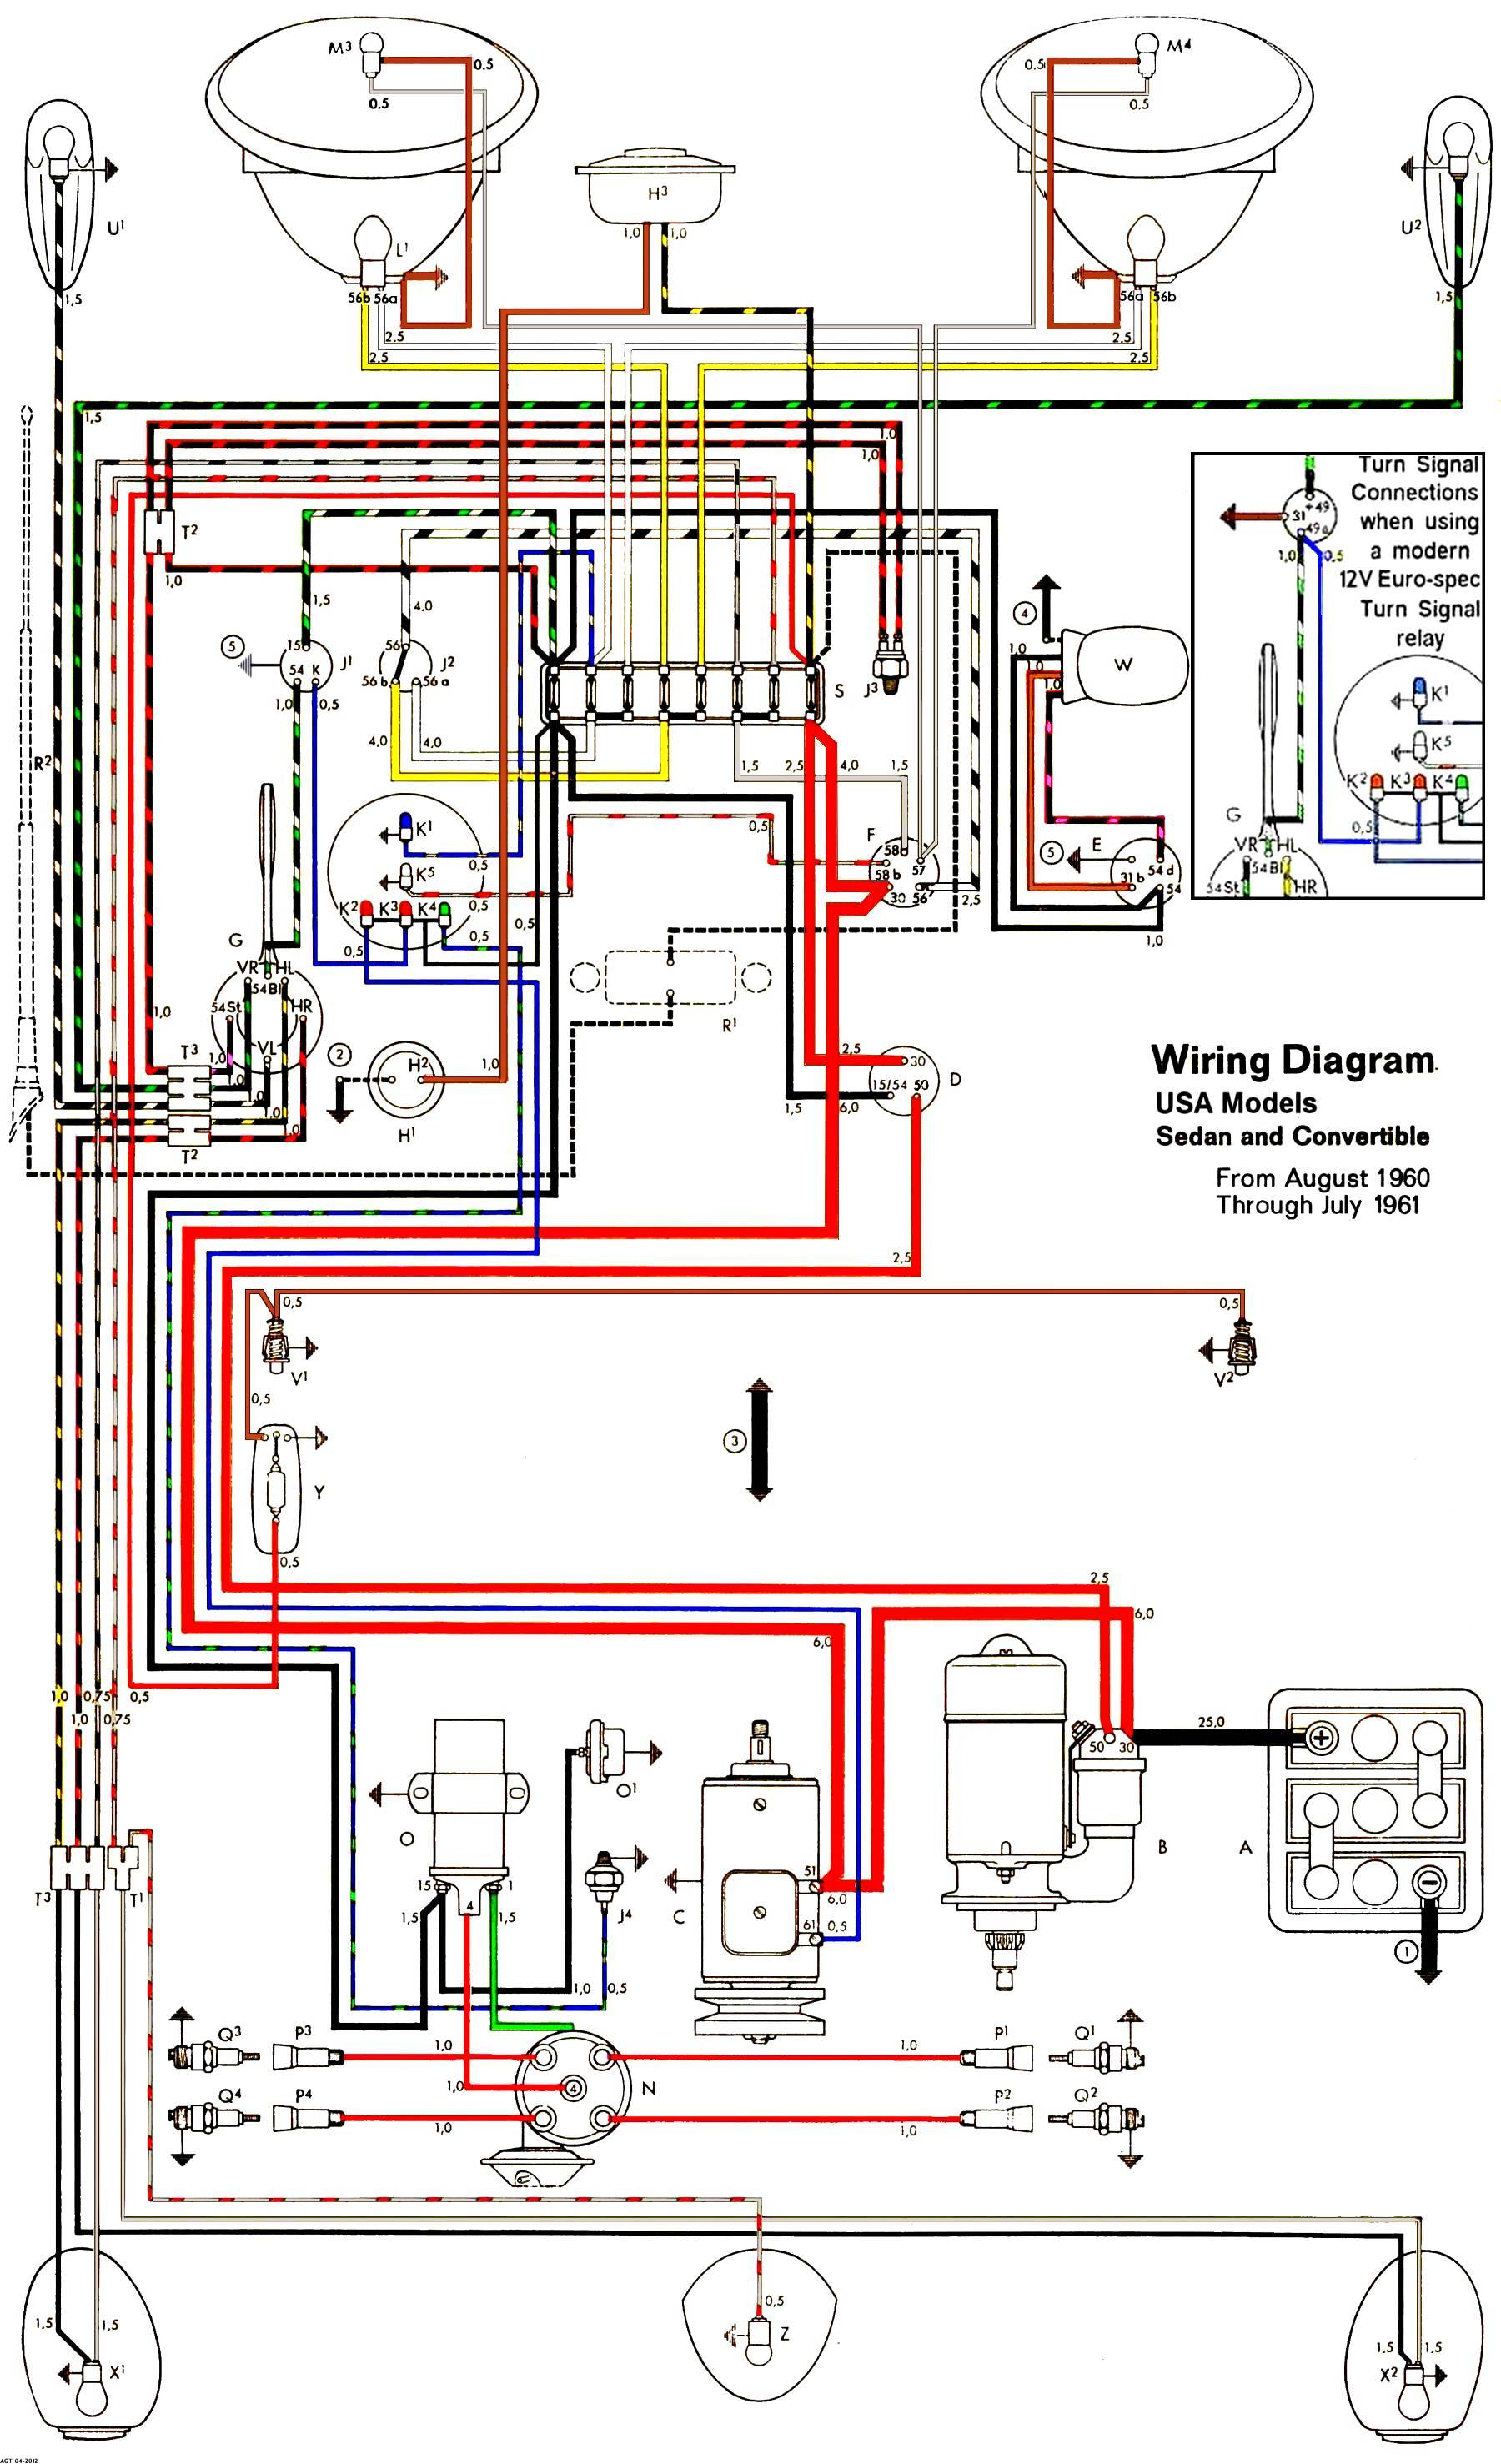 Wiring Diagram For T1 Manual E Books Cat 5 Crossover Cable 66 Block Diagramt1 Libraryt1